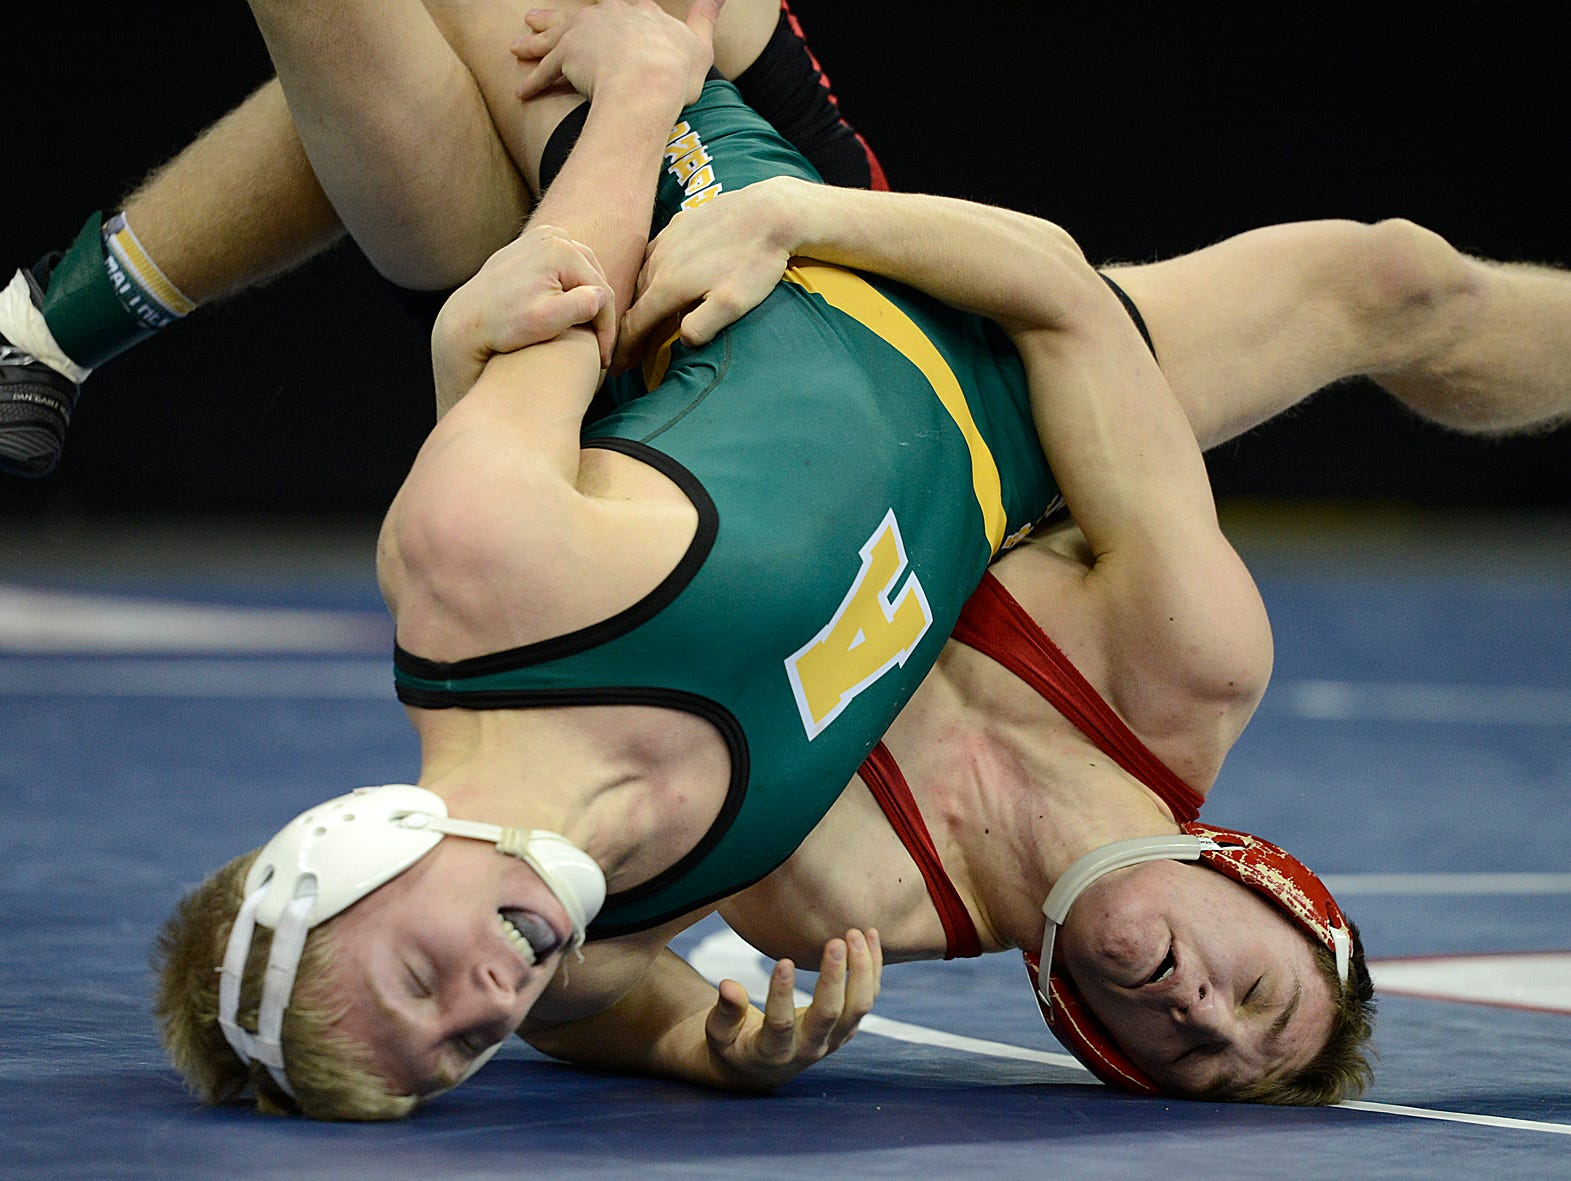 Ashwaubenon's Zac Benton battles Pewaukee's Isaac Lodise in their 138-pound Division 1 consolation semifinal match during the WIAA individual wrestling state tournament Friday at the Kohl Center in Madison. Lodise won the match. Evan Siegle/Press-Gazette Media